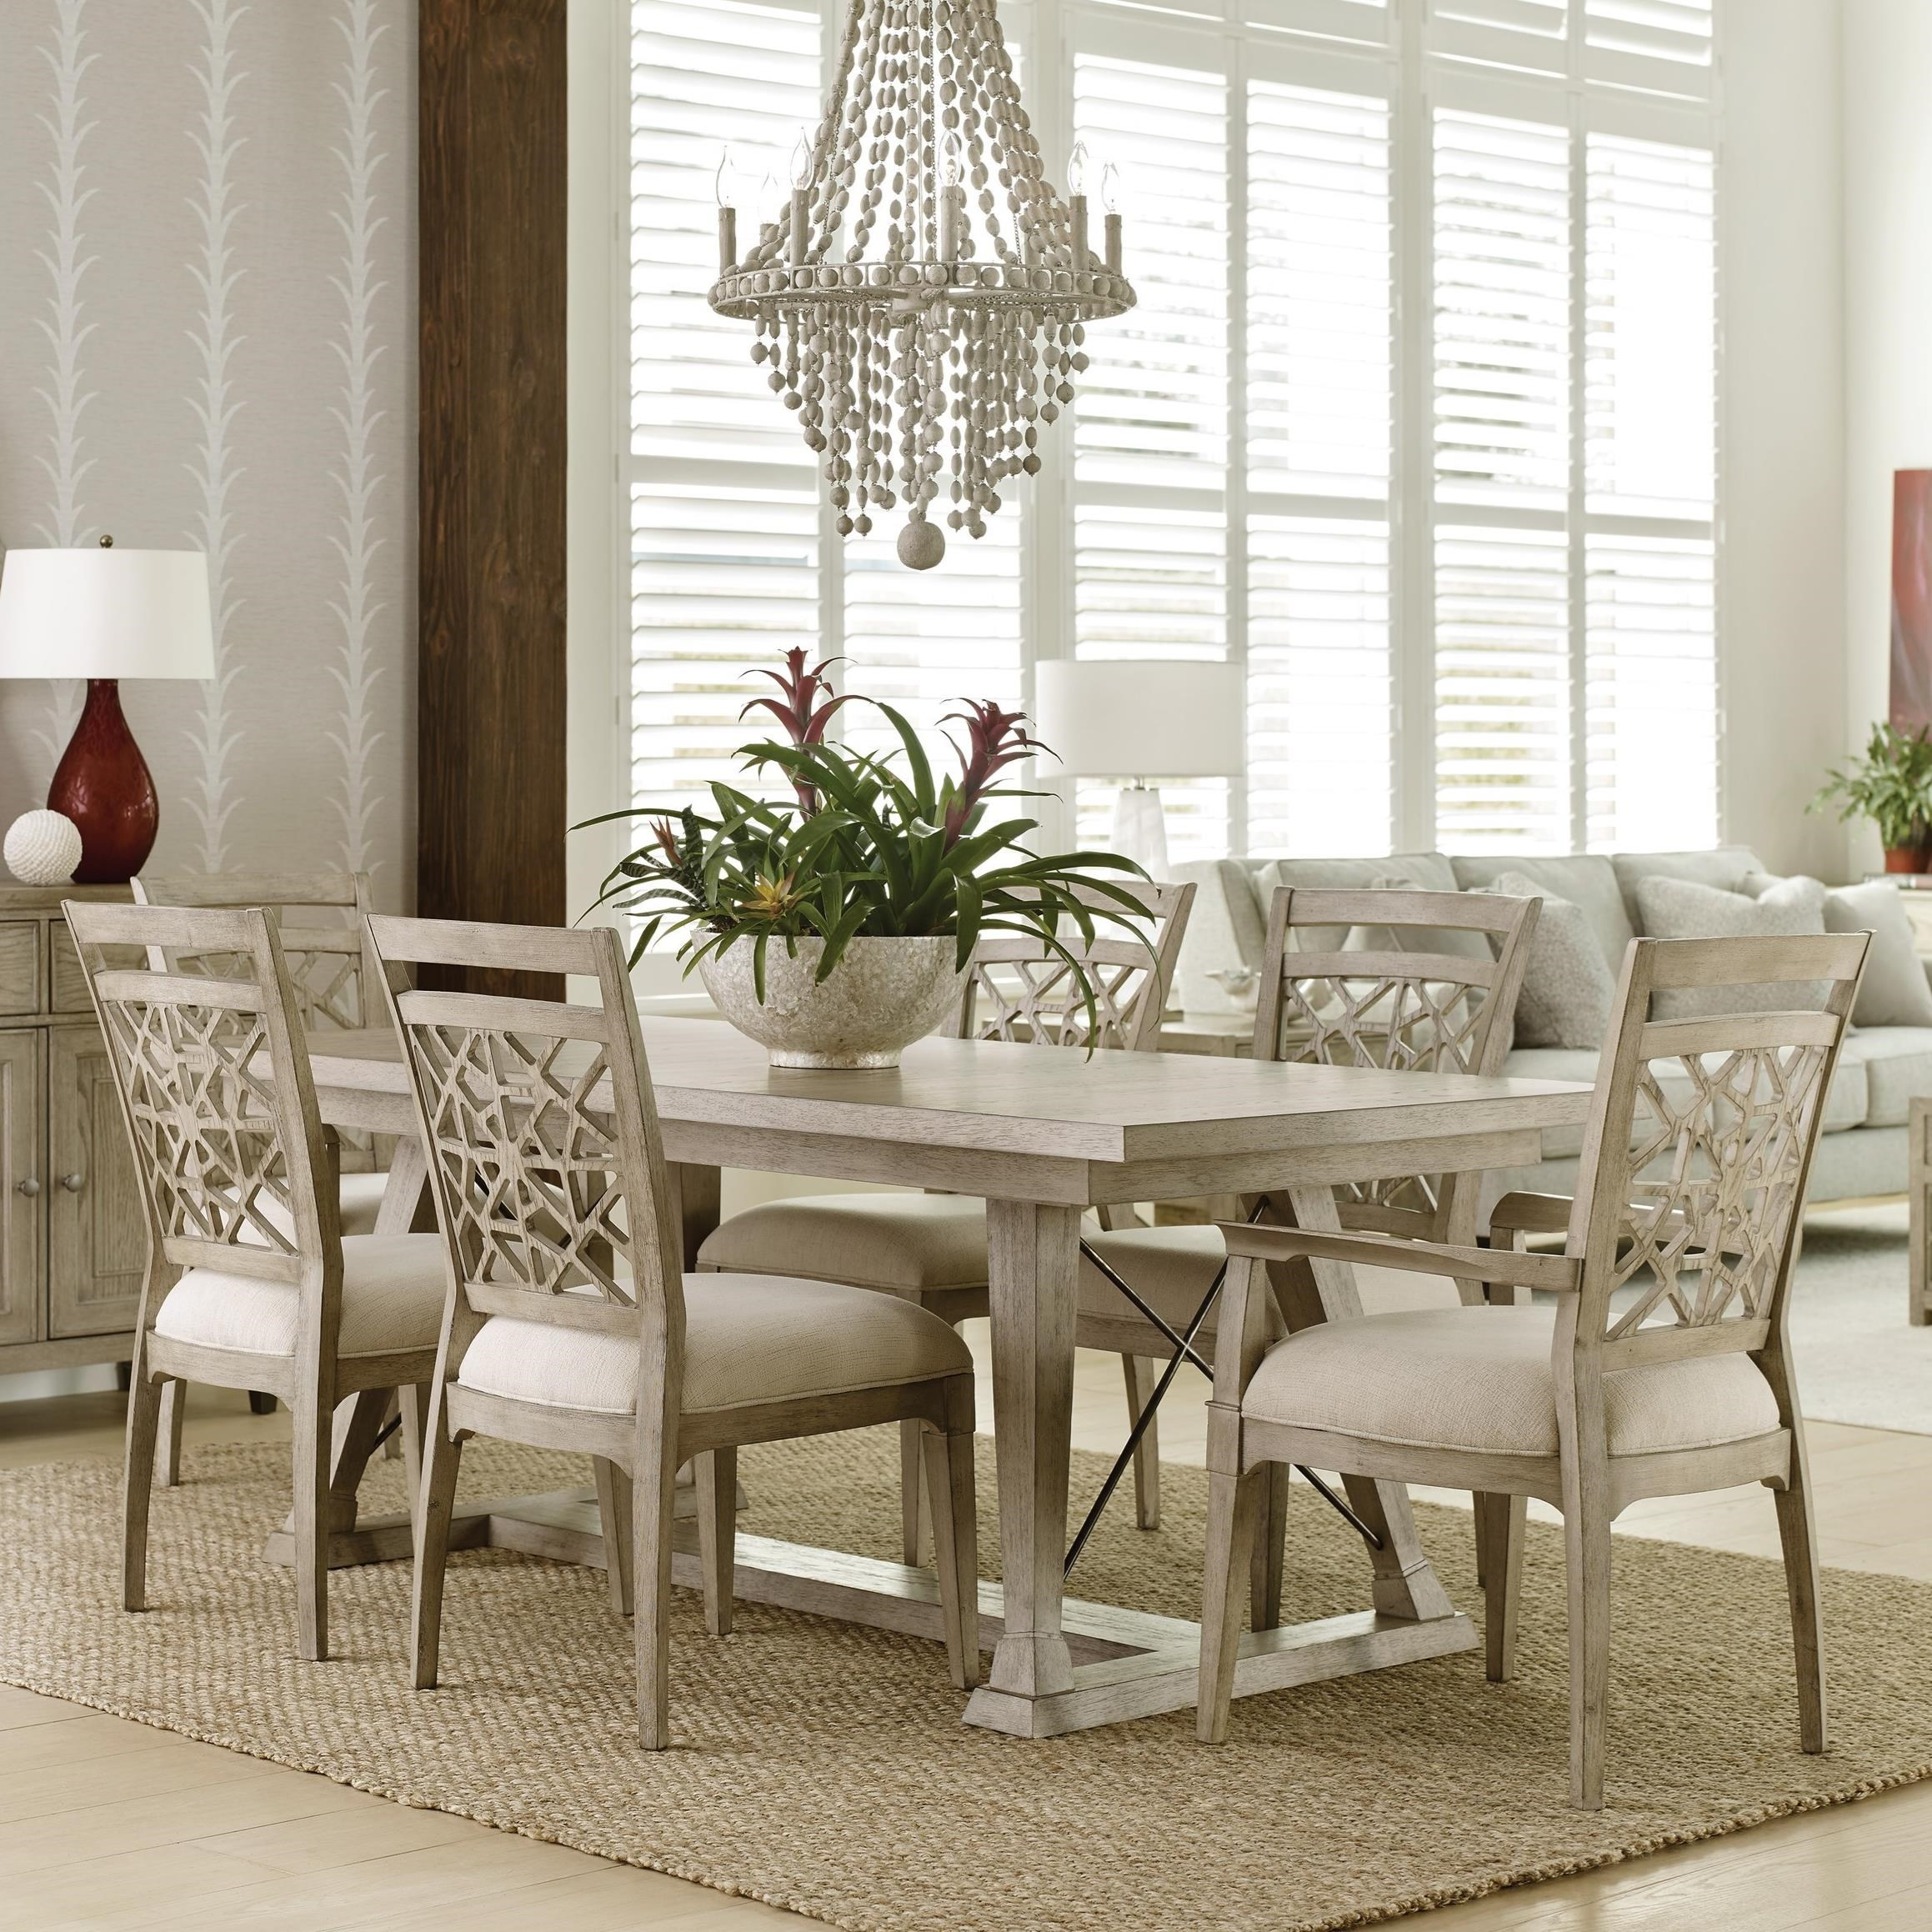 Vista 7 Piece Dining Set with Removable Leaves by American Drew at Northeast Factory Direct